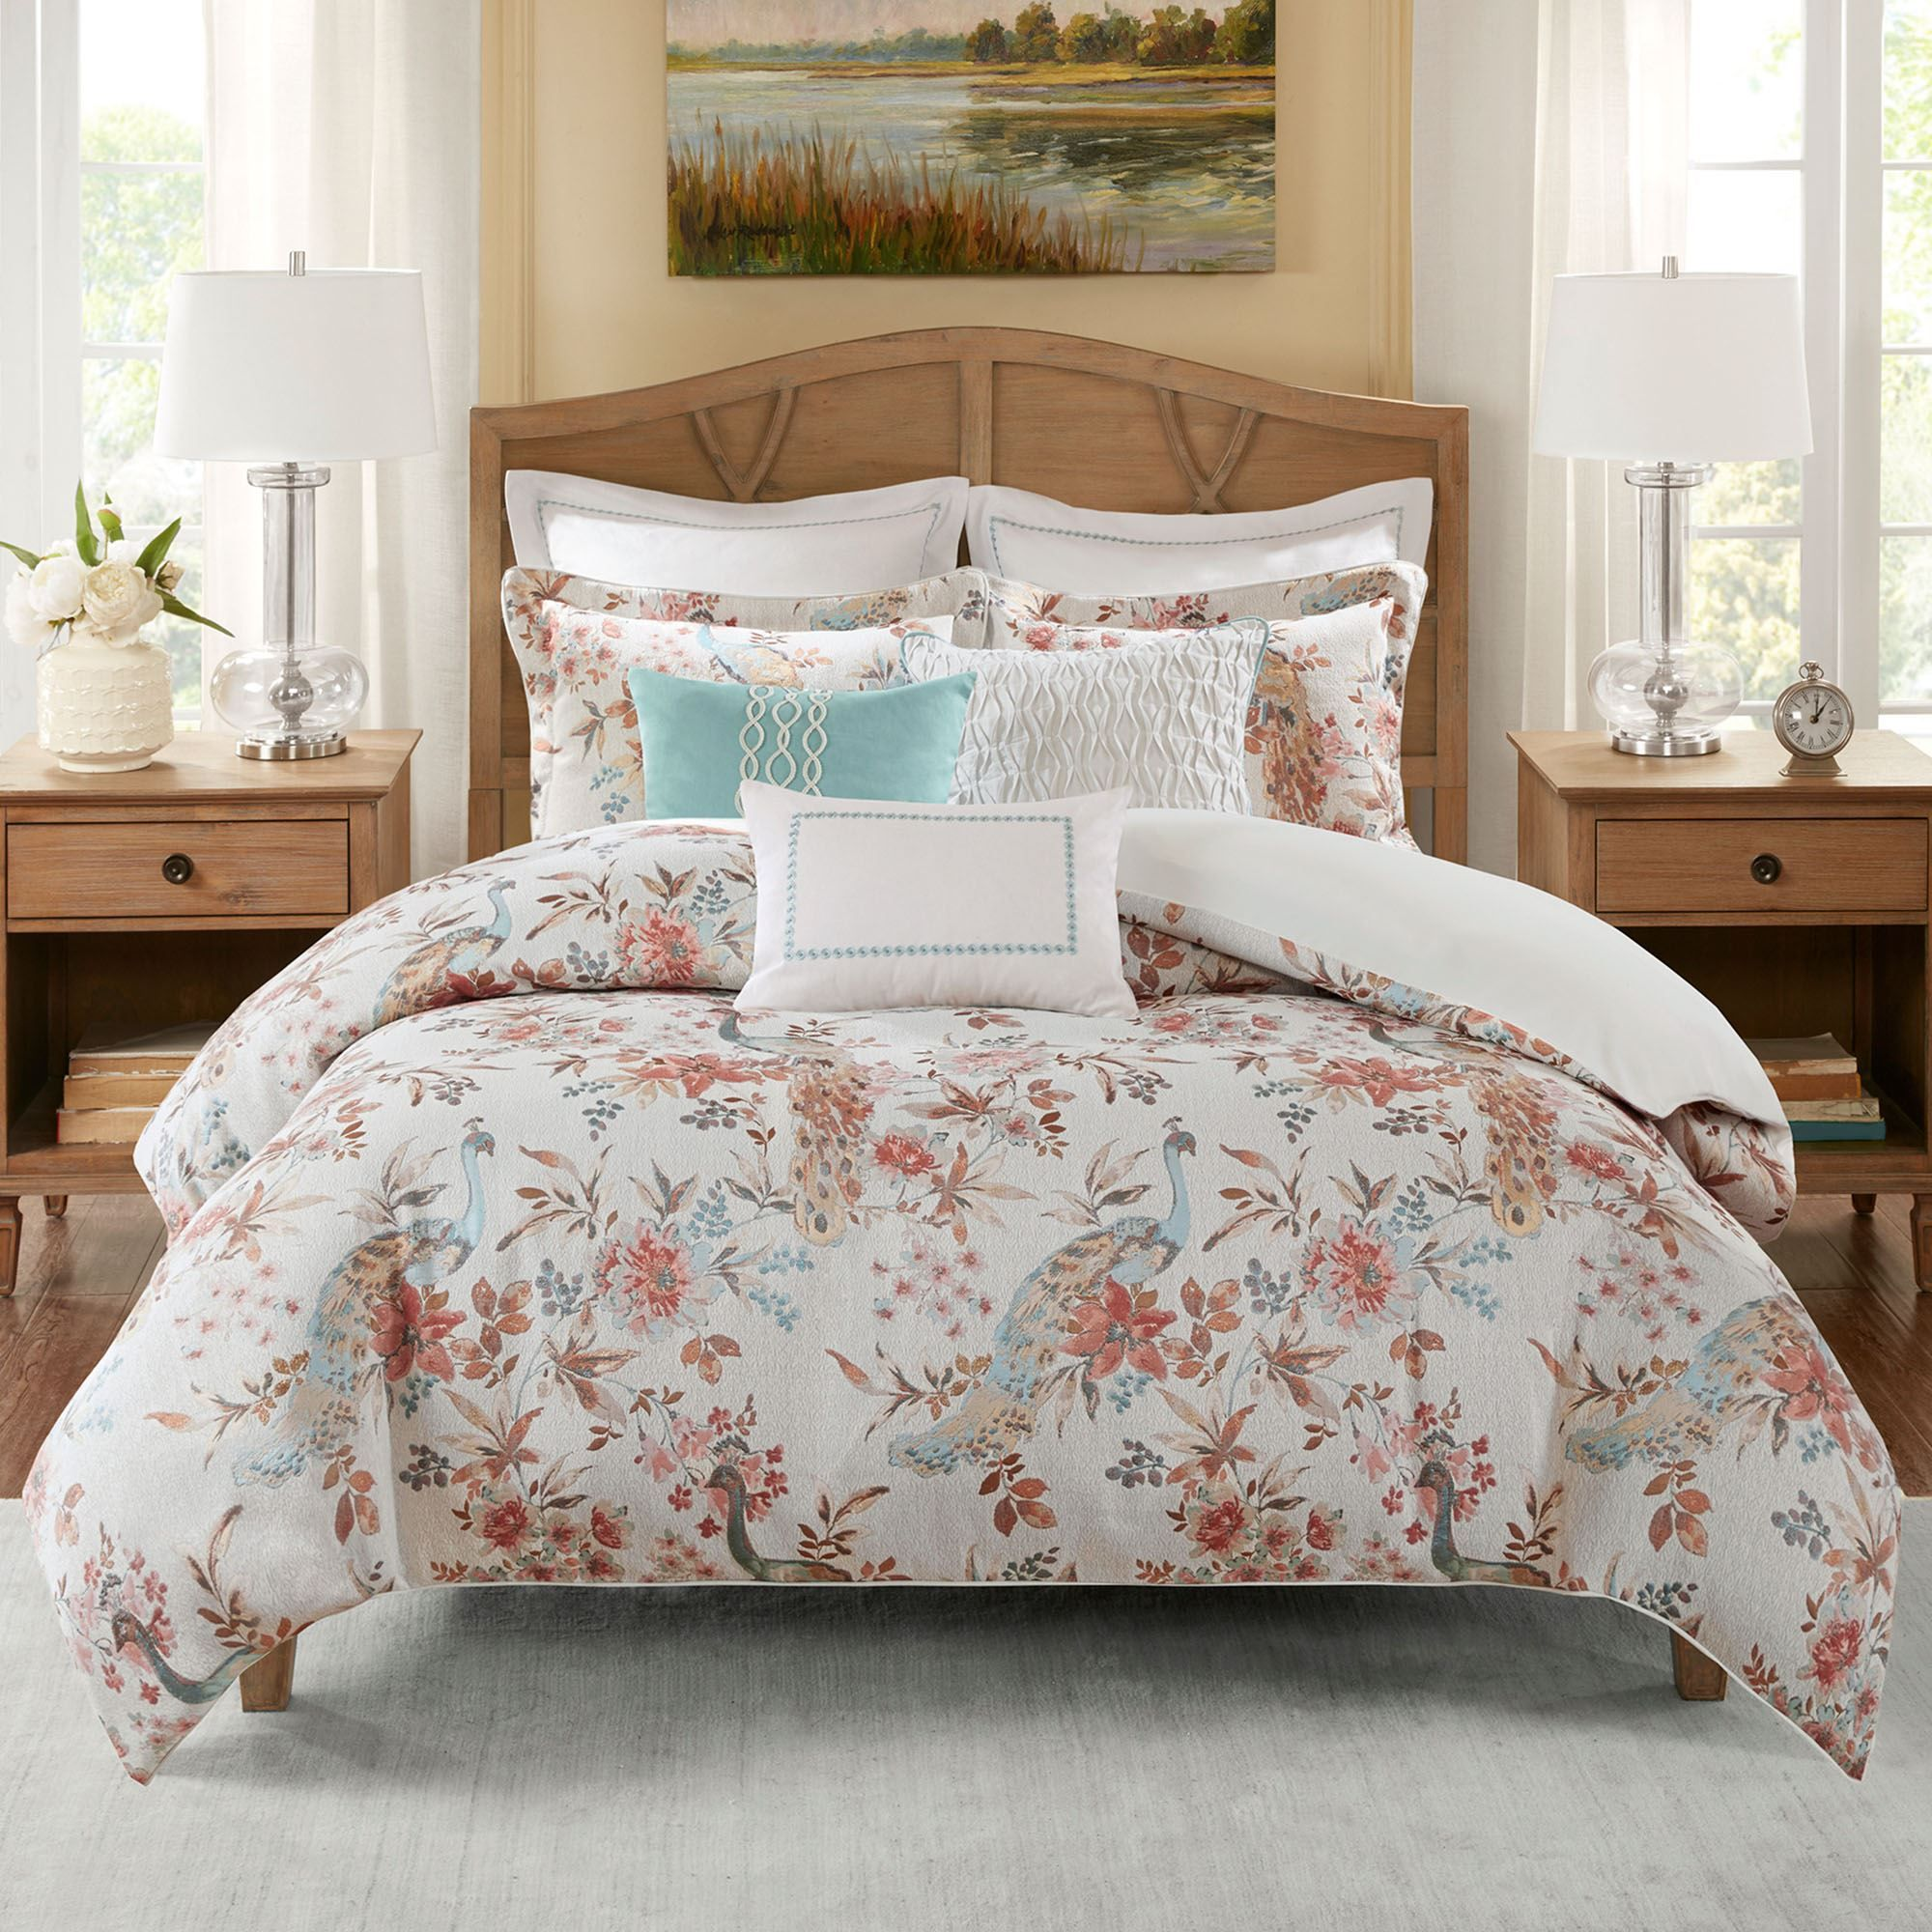 Annandale Peacock Floral 9 10 Pc Comforter Bed Set By Madison Park